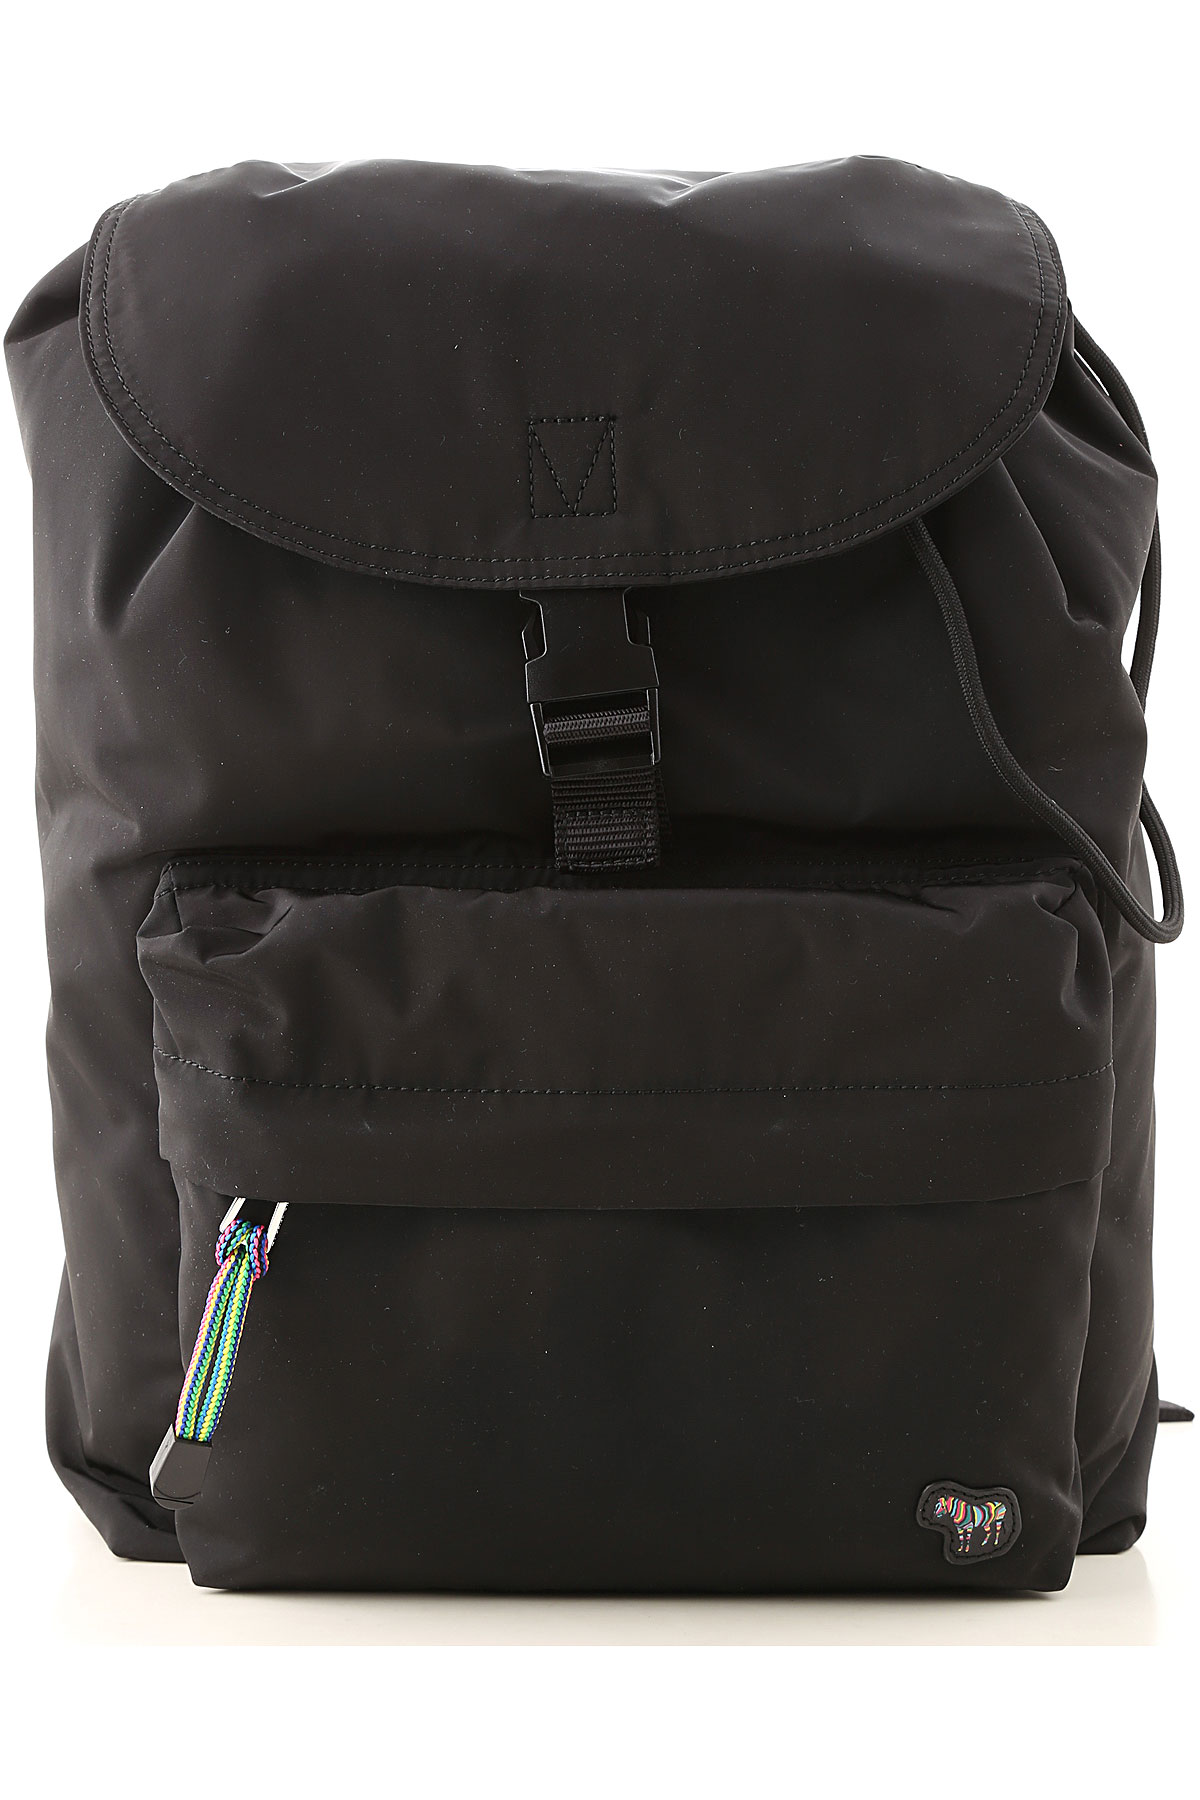 Paul Smith Backpack for Men On Sale, Black, polyestere, 2019